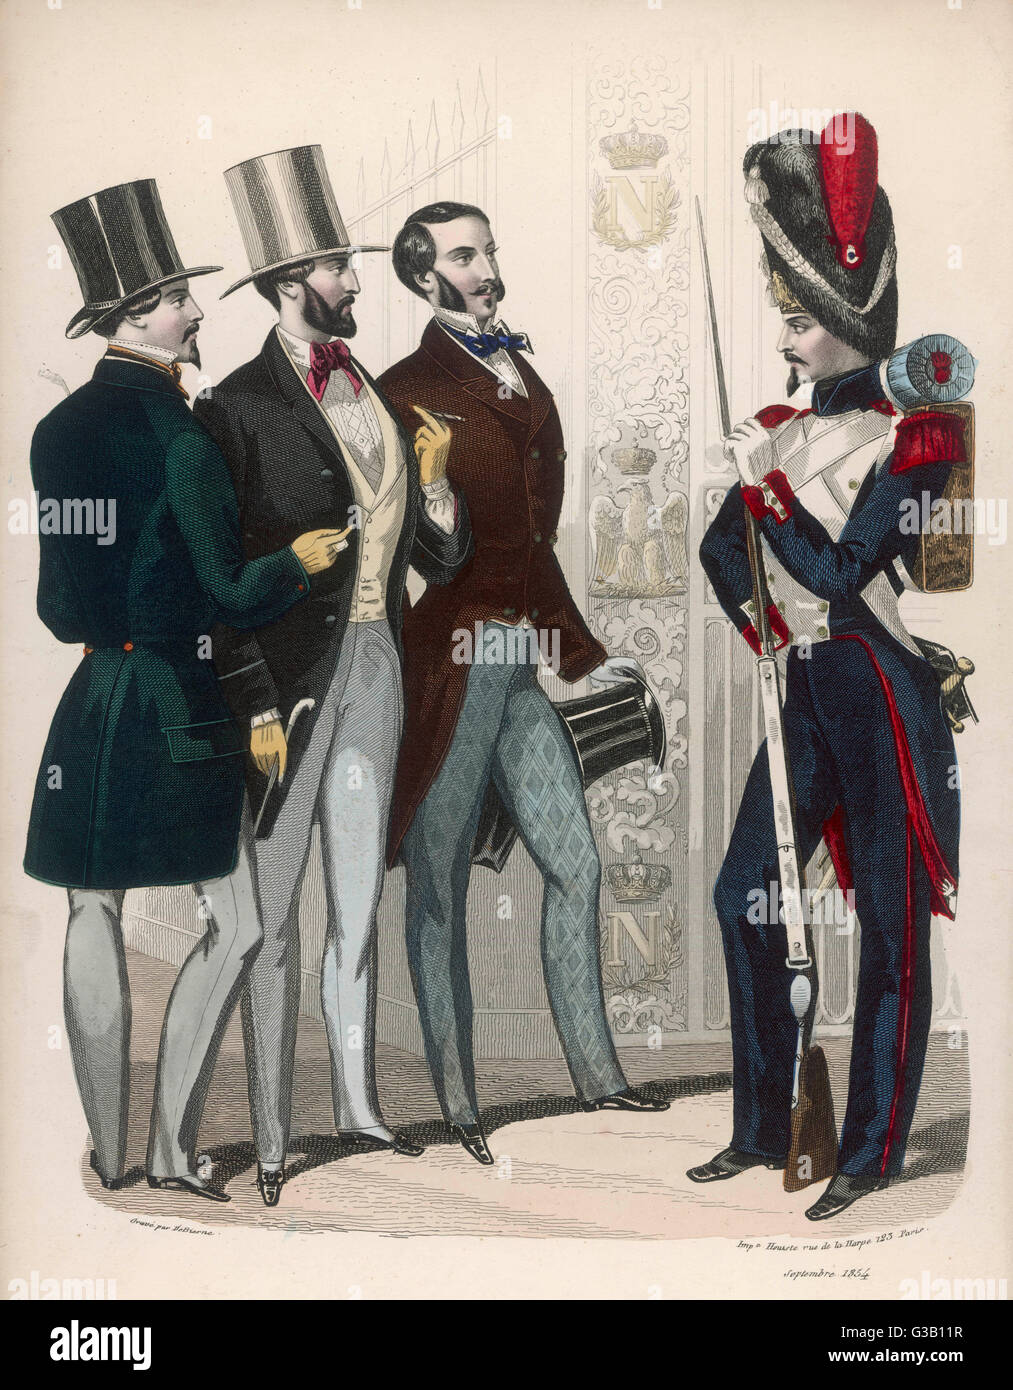 French soldiers  with three civilian men        Date: 1854 - Stock Image